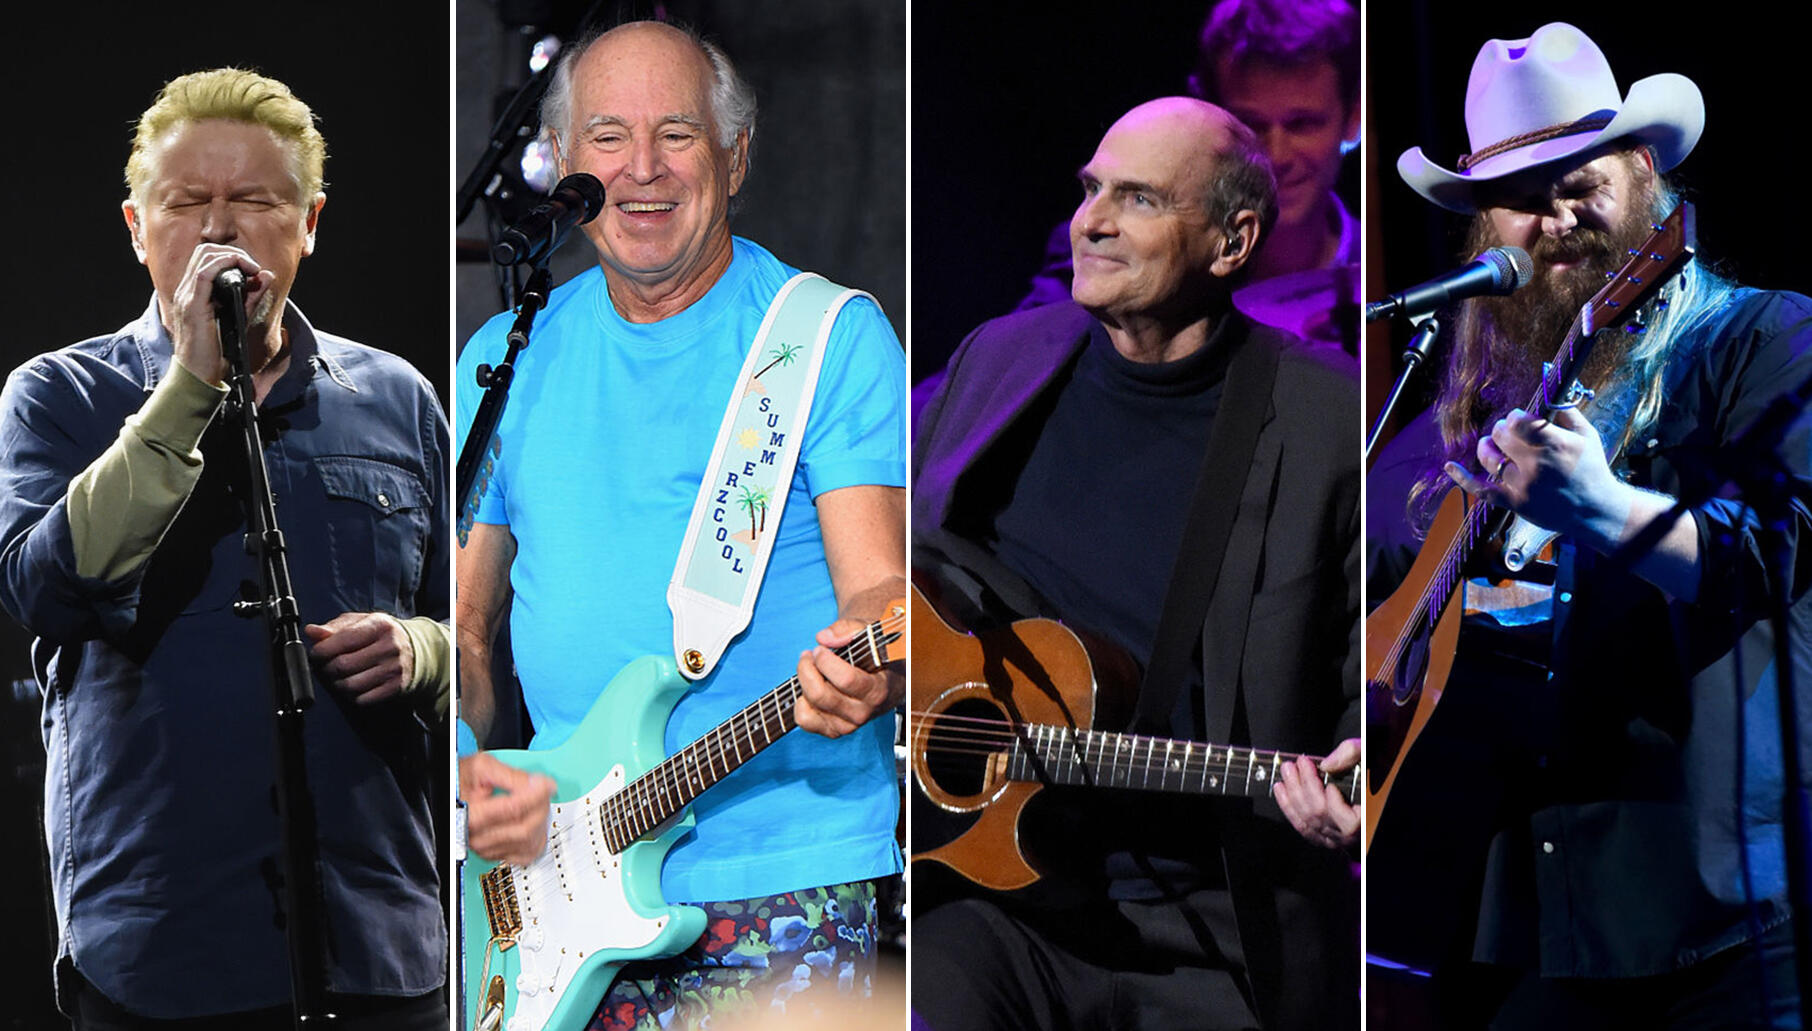 Eagles Announce Tour With Jimmy Buffett, James Taylor, Chris Stapleton